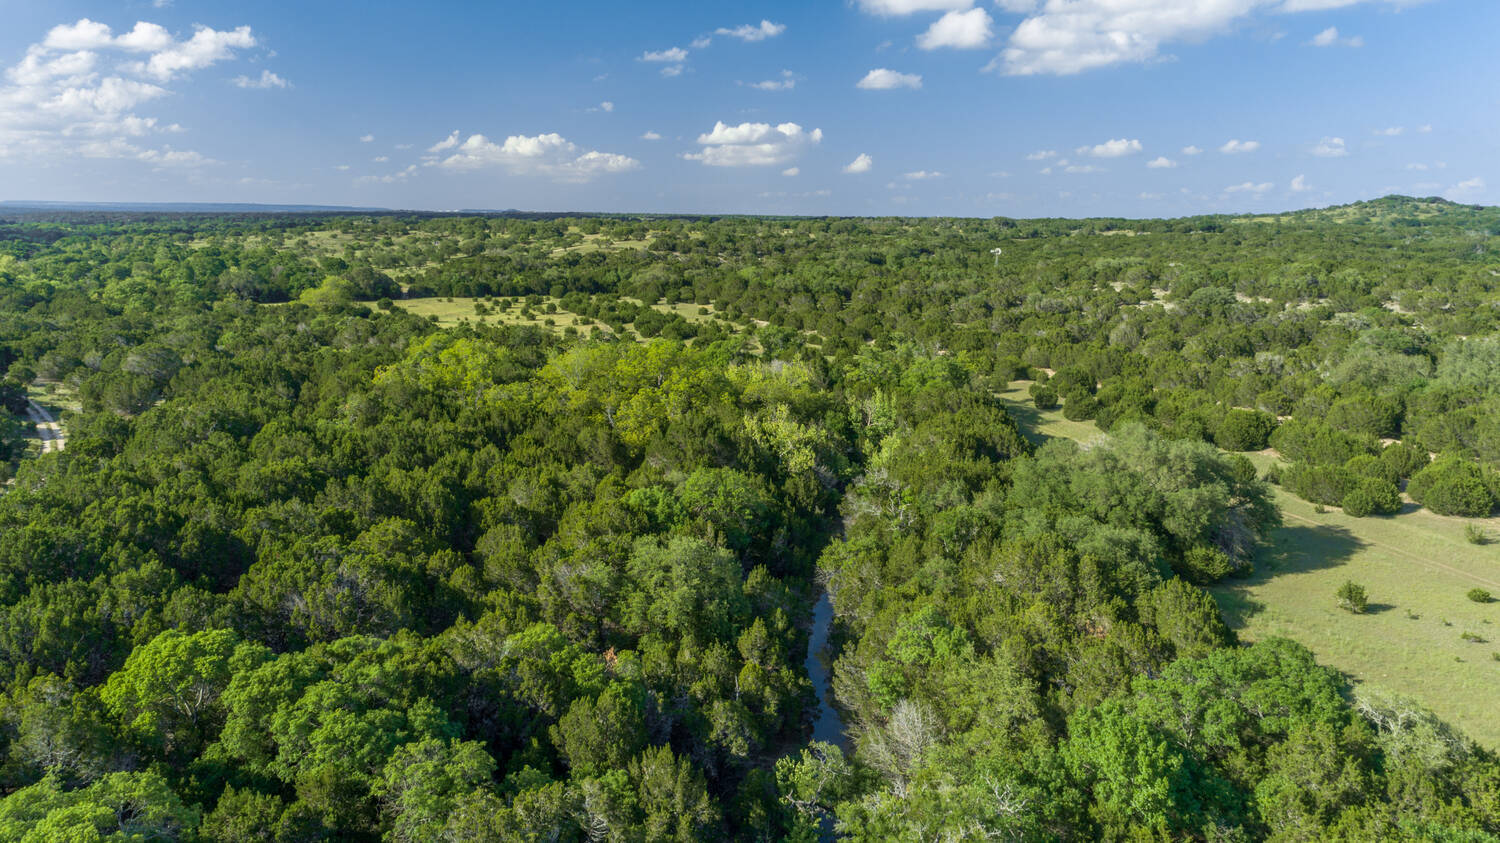 Hidden-Springs-Ranch-Williamson-County-Texas-Republic-Ranches-Tallon-Martin-Broker-17